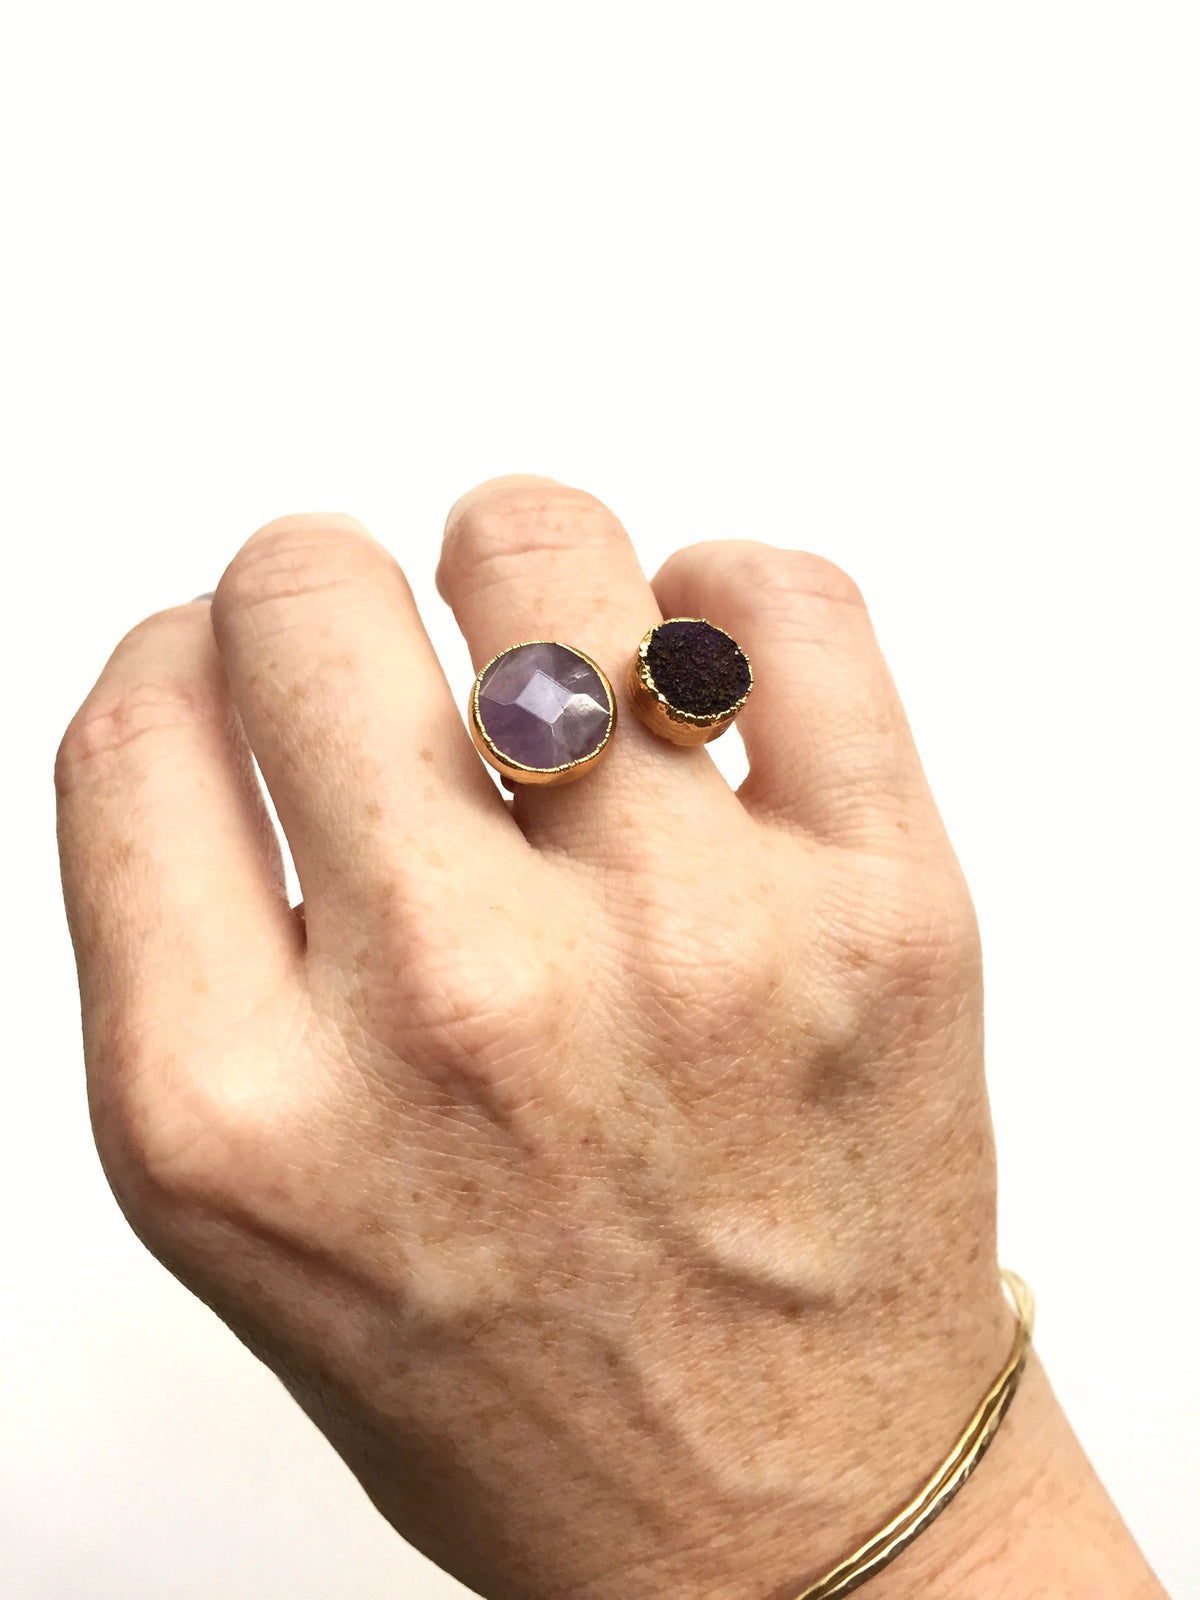 amethyst druzy open ring on hand